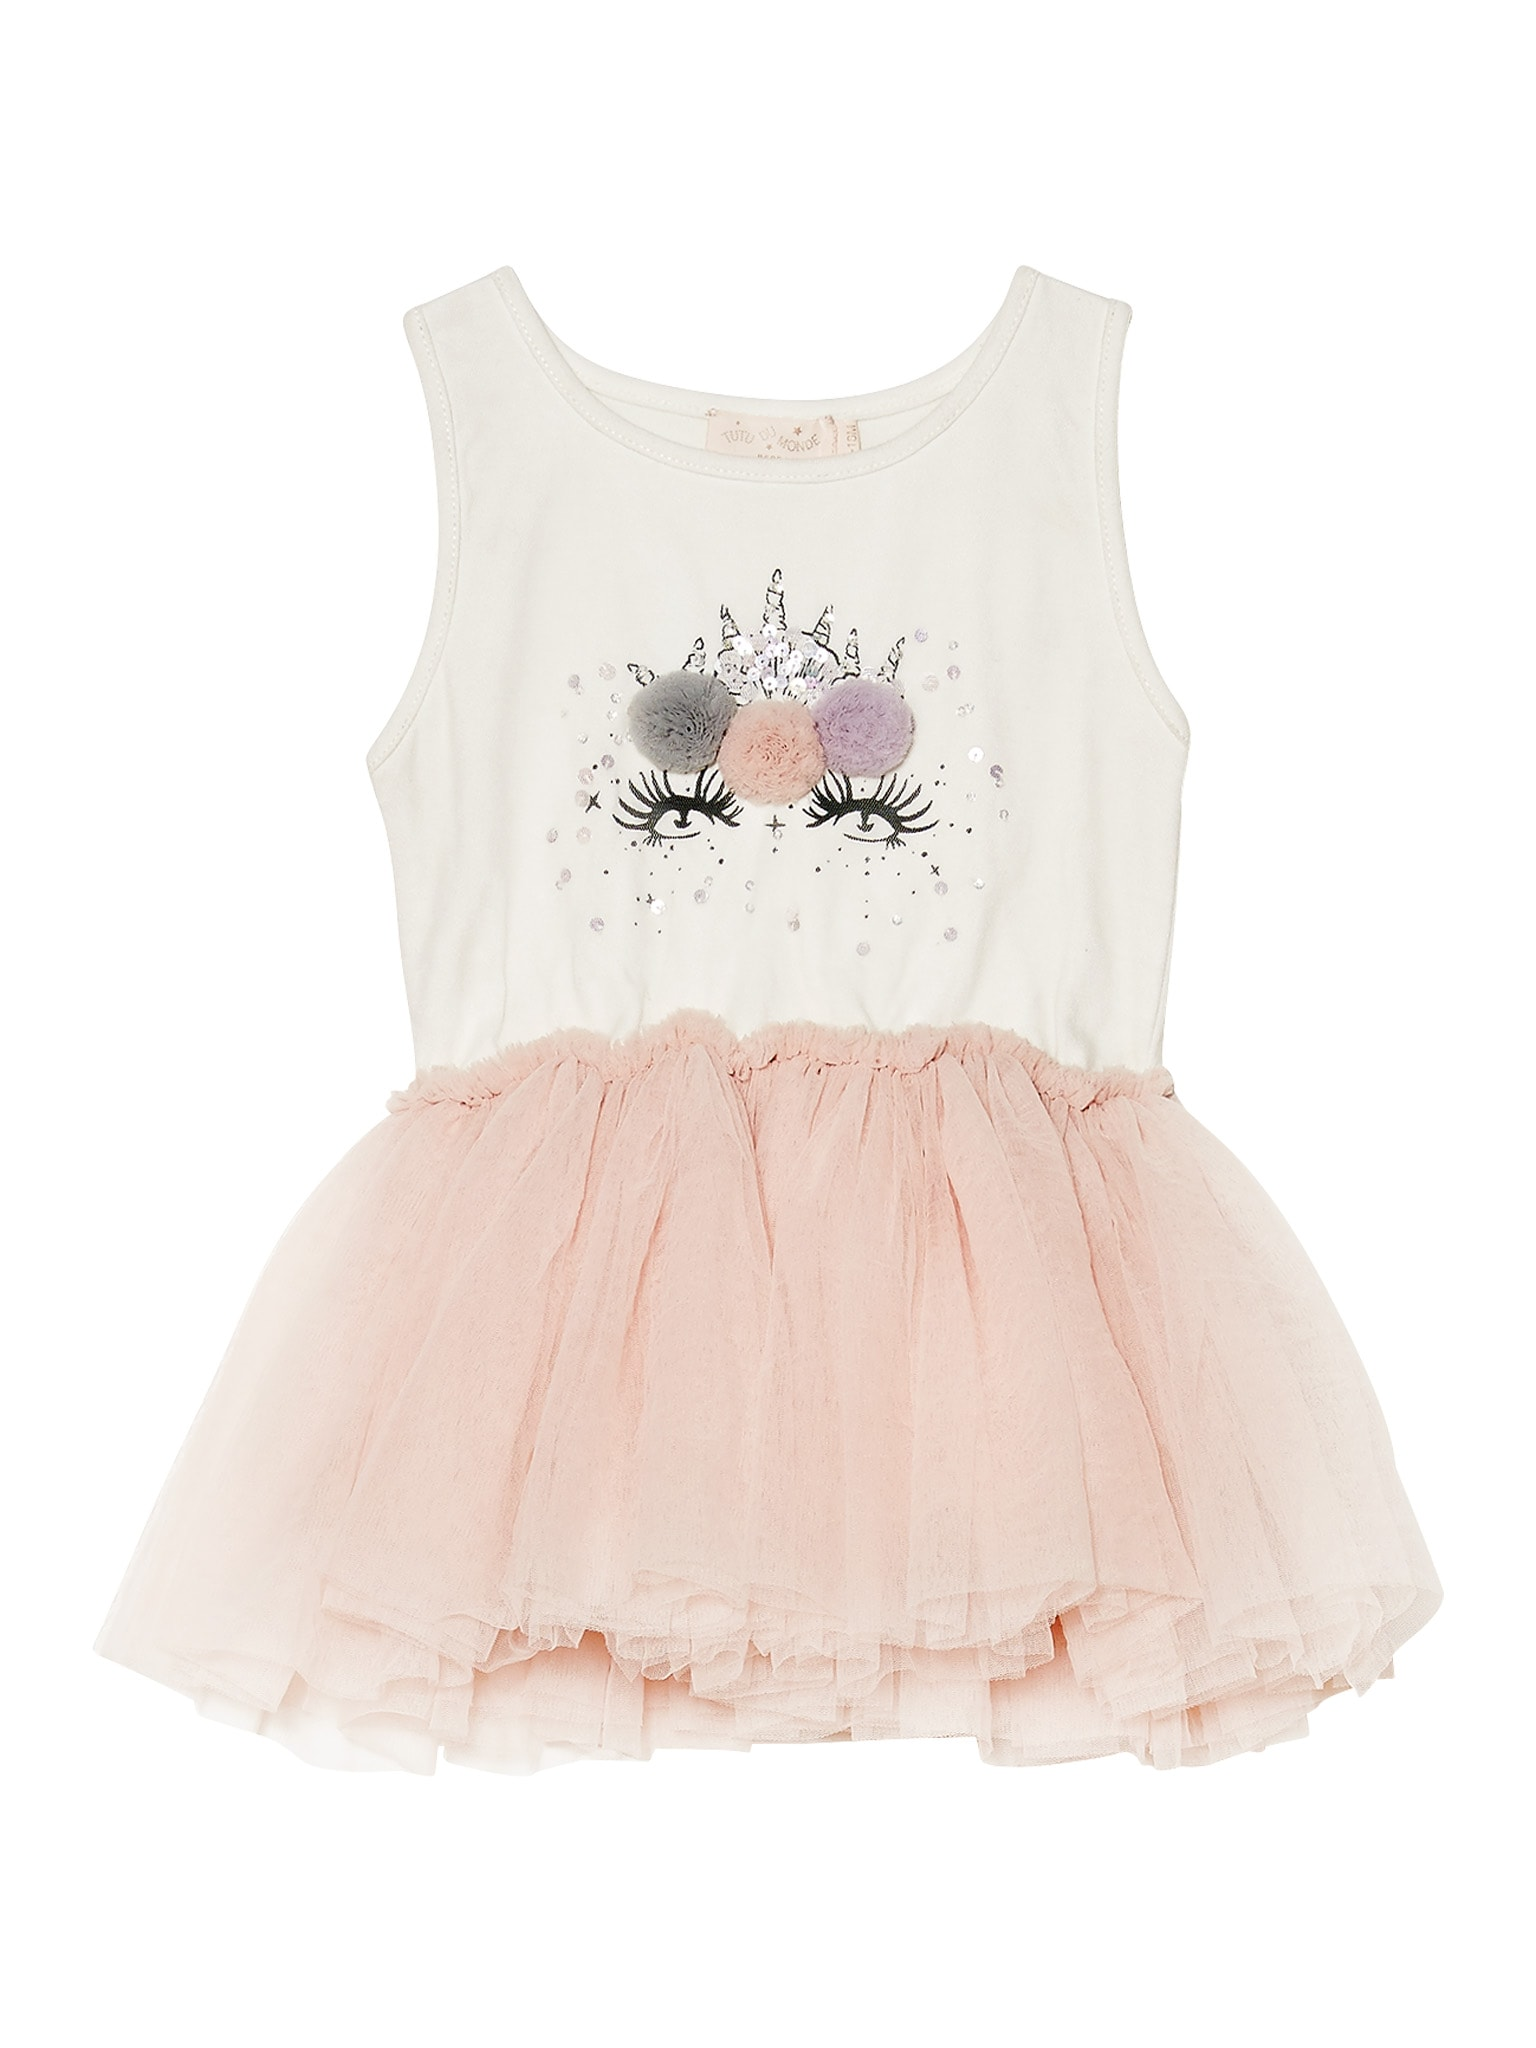 Tdm4233 bebe little luna tutu dress 01 min